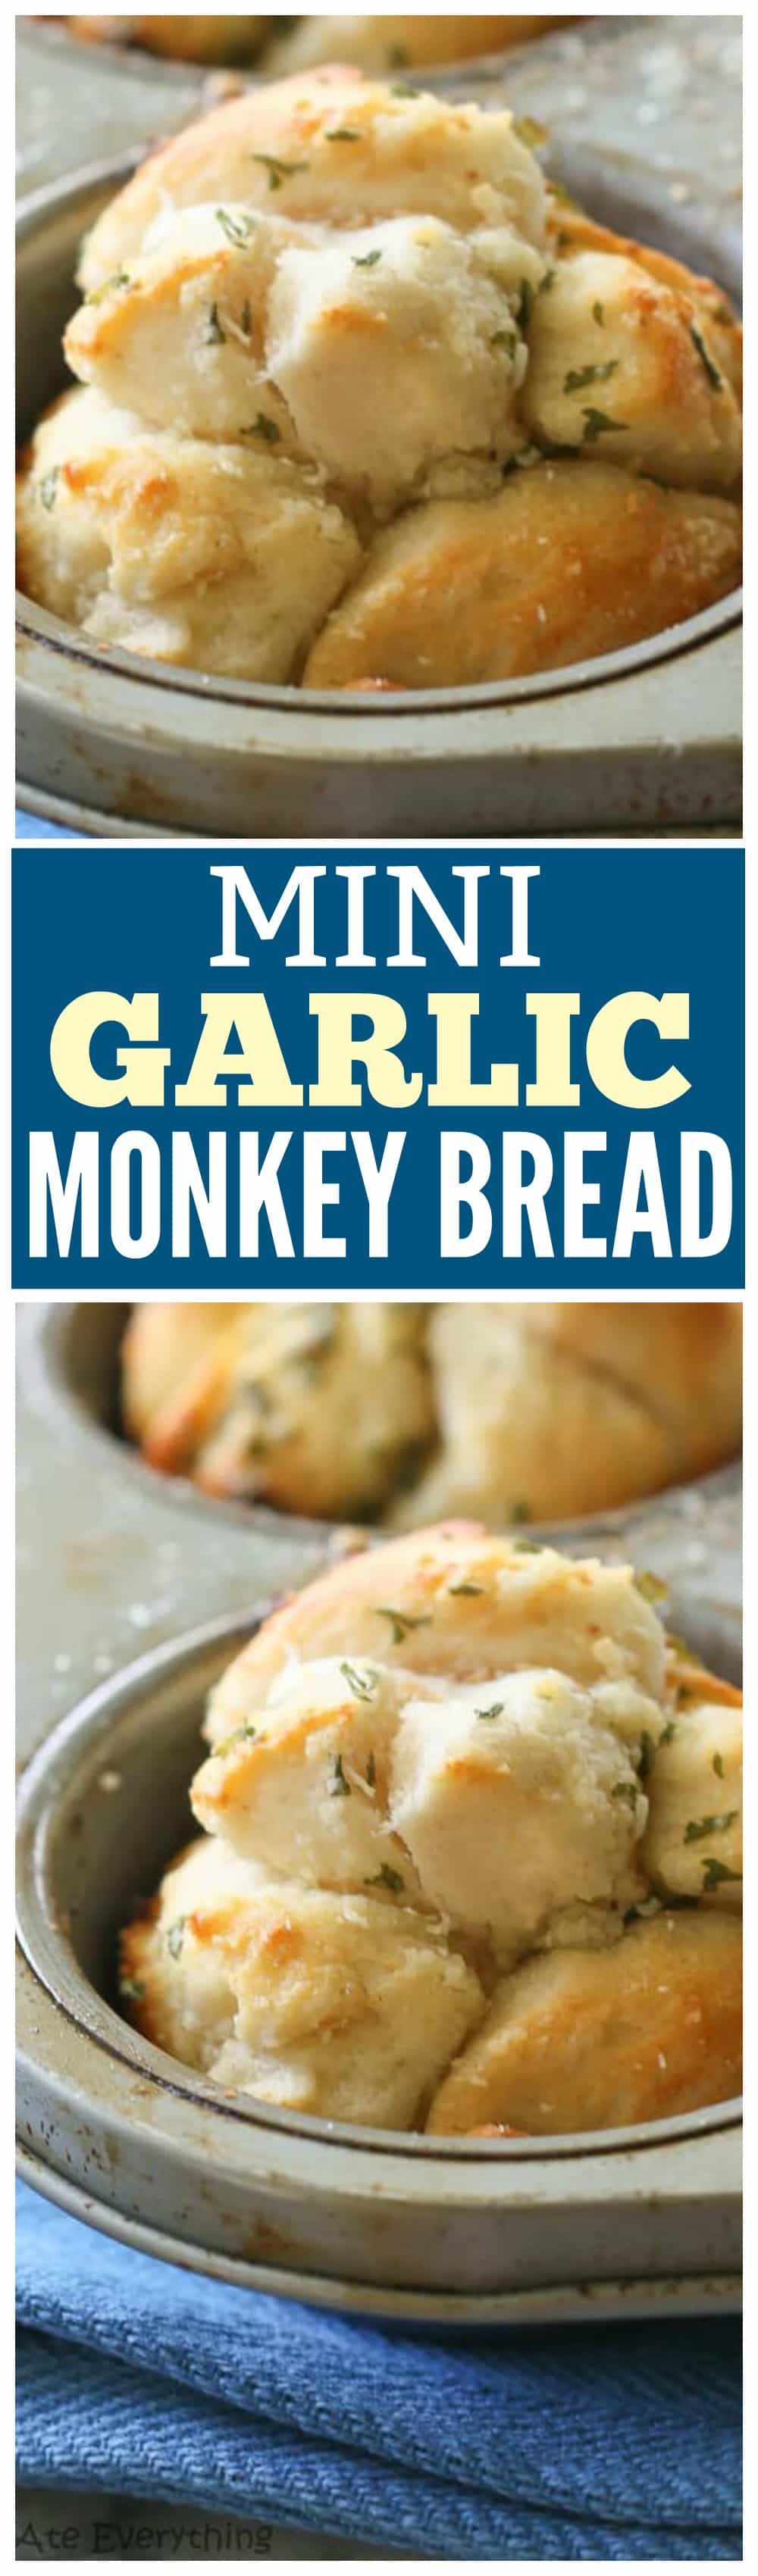 Mini Garlic Monkey Bread - the-girl-who-ate-everything.com